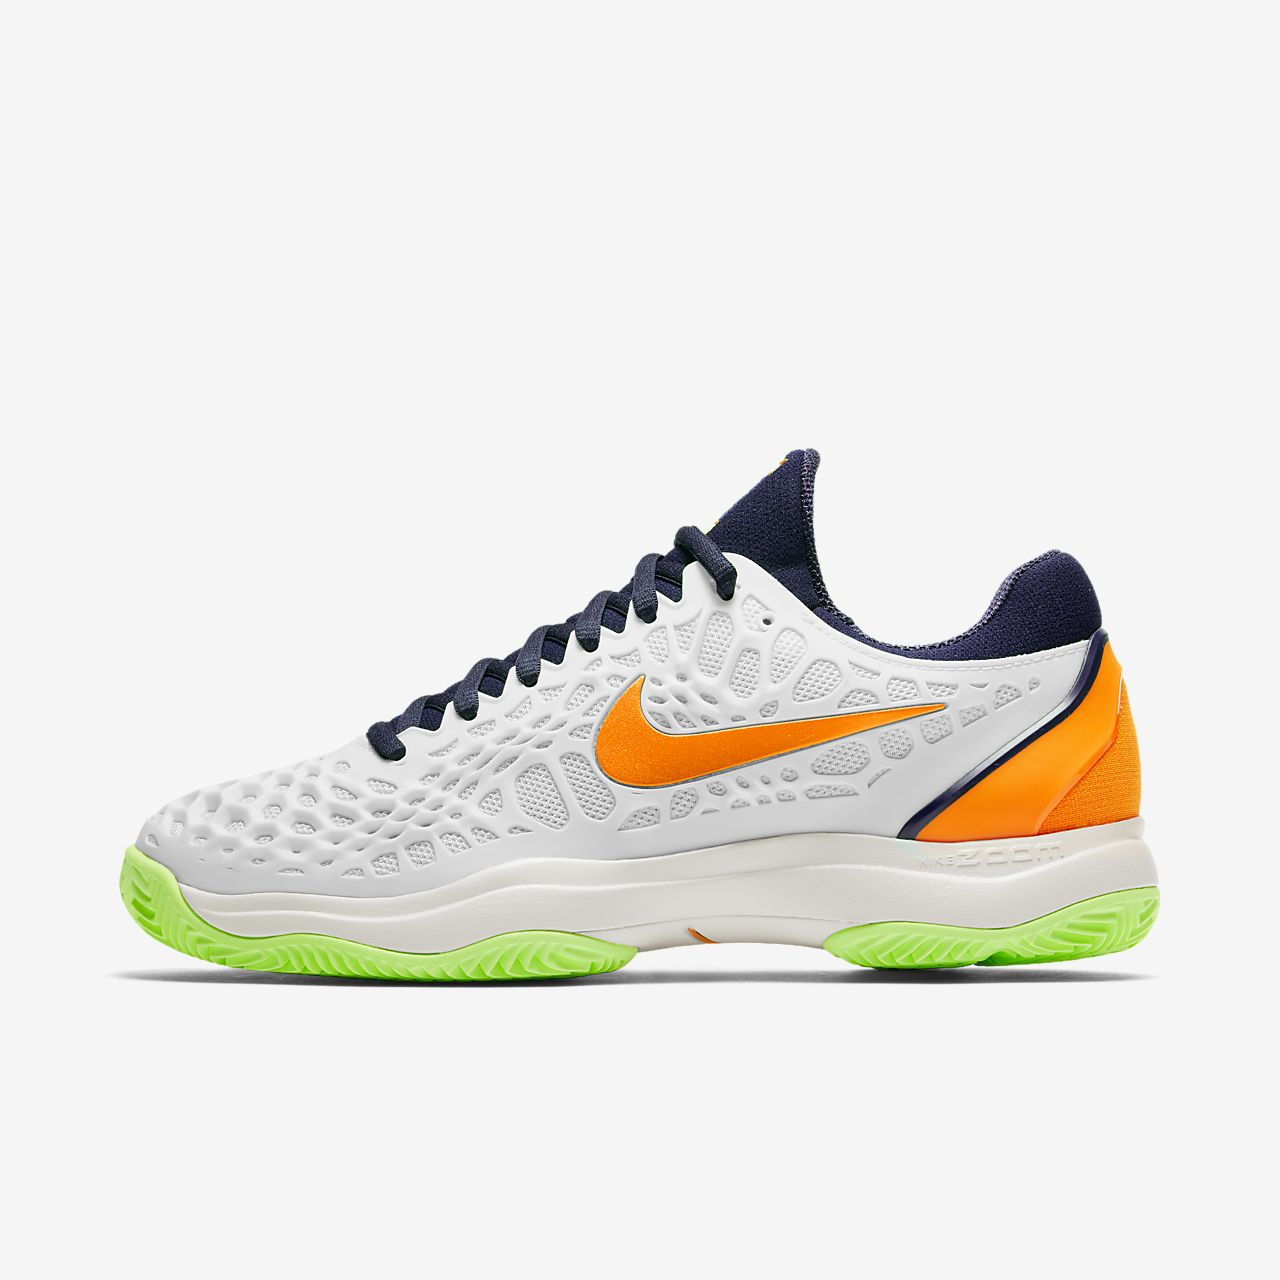 Clay Be Zoom Chaussure Pour Tennis Homme Cage Nike De 3 zqAYF